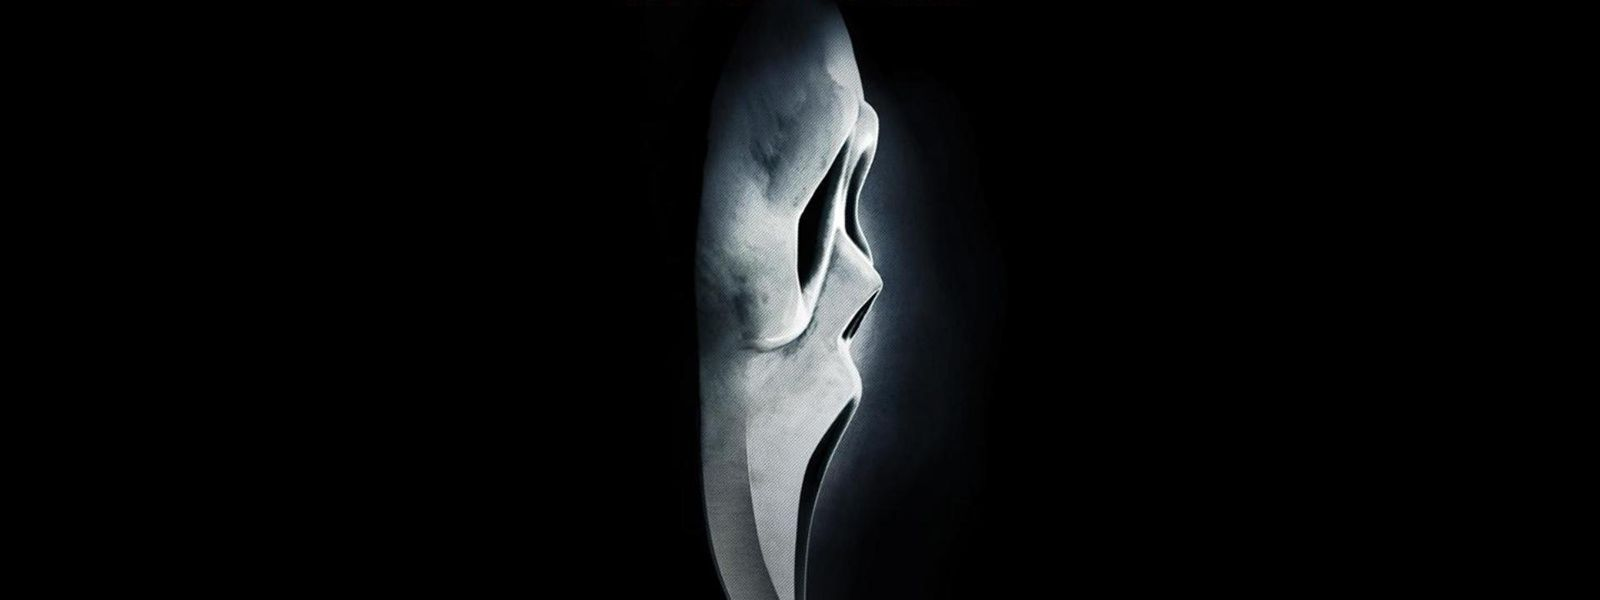 With 'Scream 5' Announced, Let's Look Back at 'Scream 4'